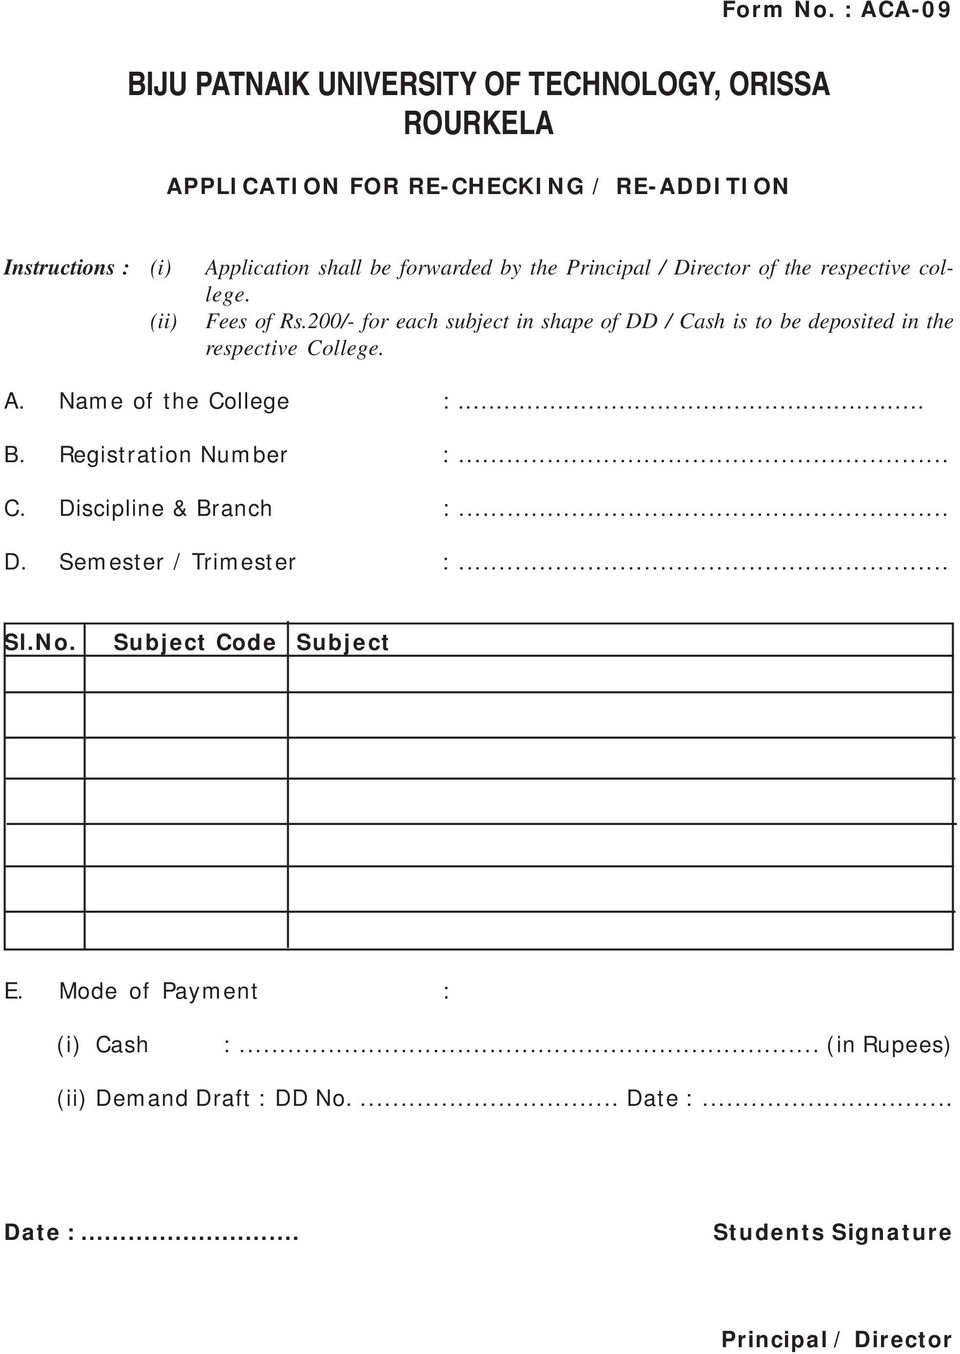 the respective college. (ii) Fees of Rs.